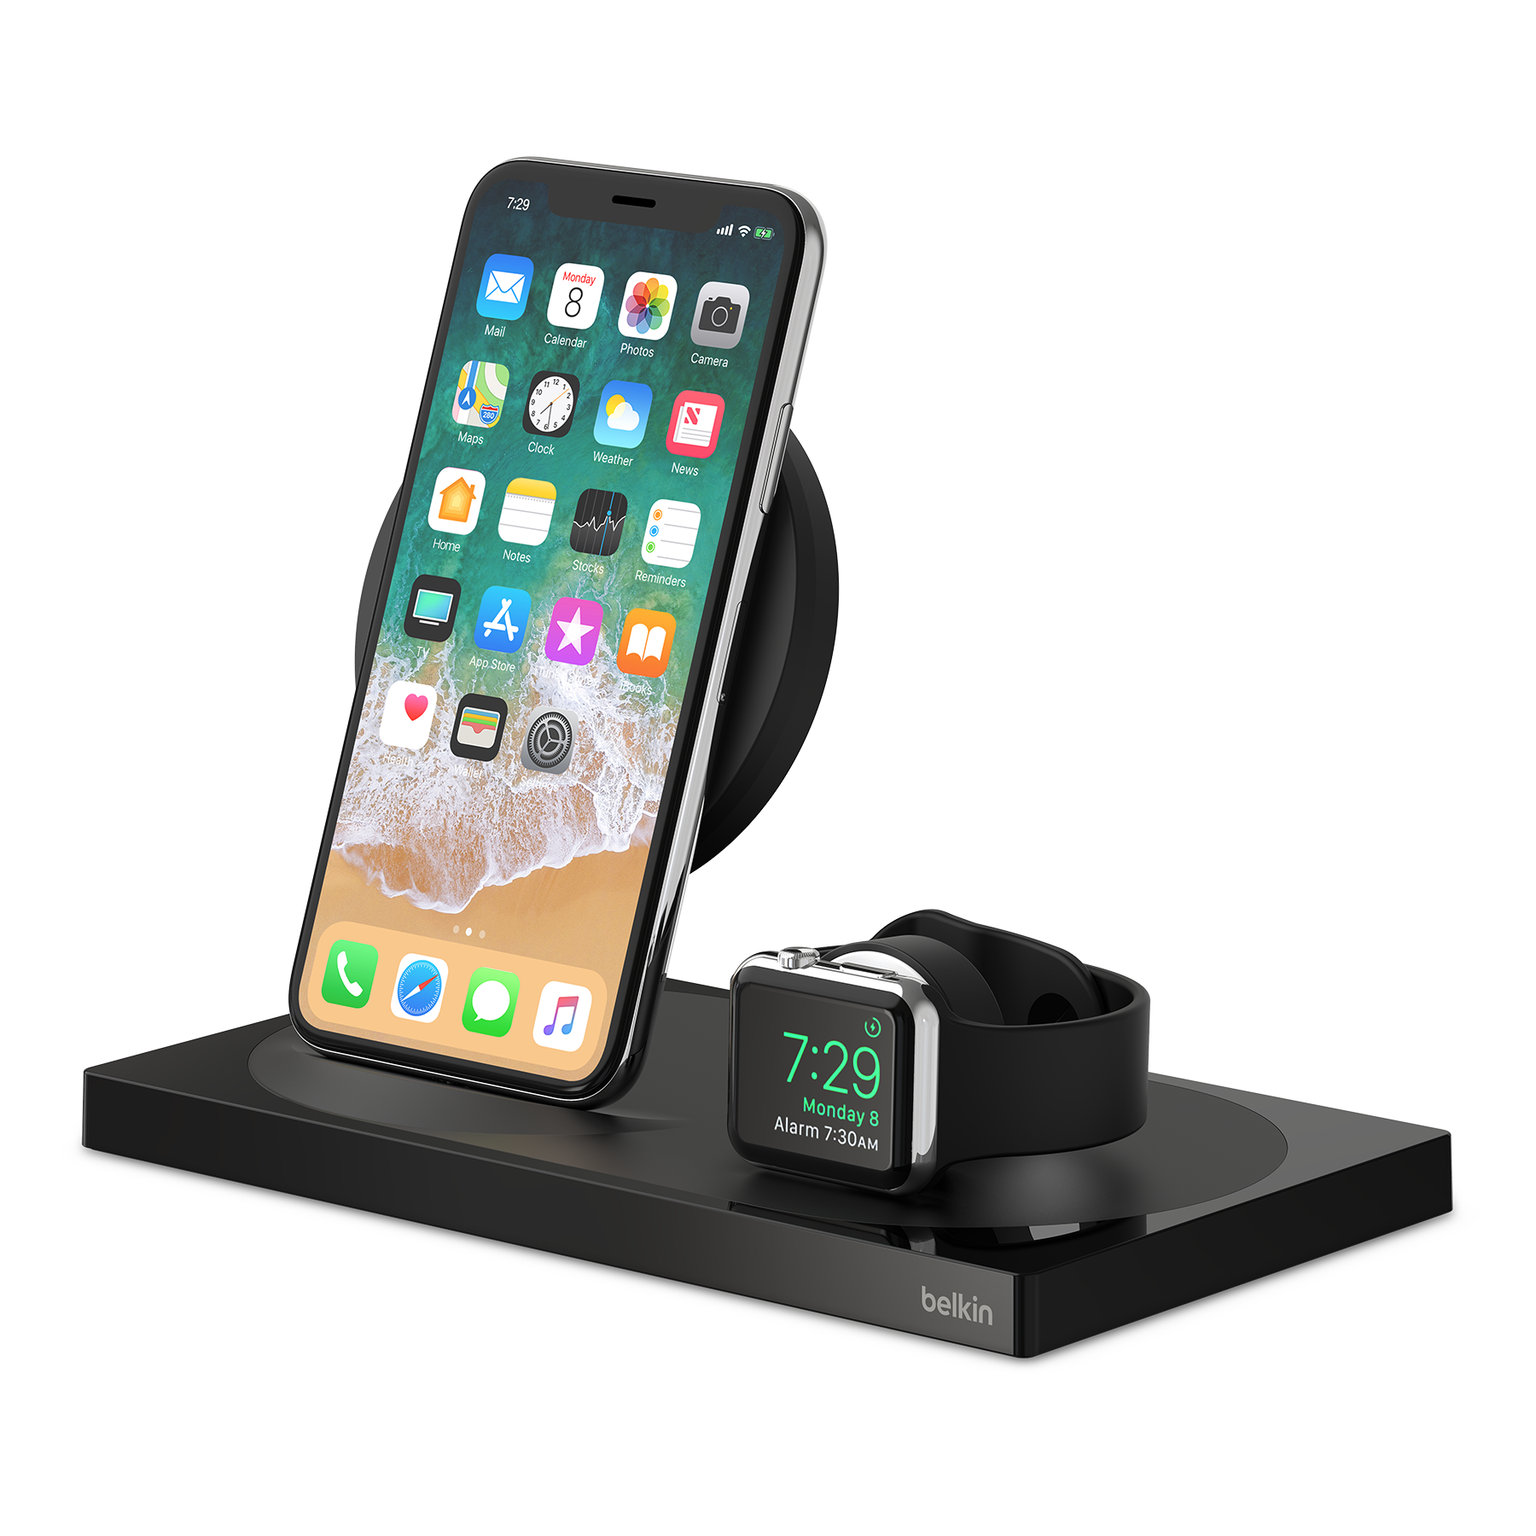 Belkin unveils BOOST UP Wireless Charging Dock for iPhone +